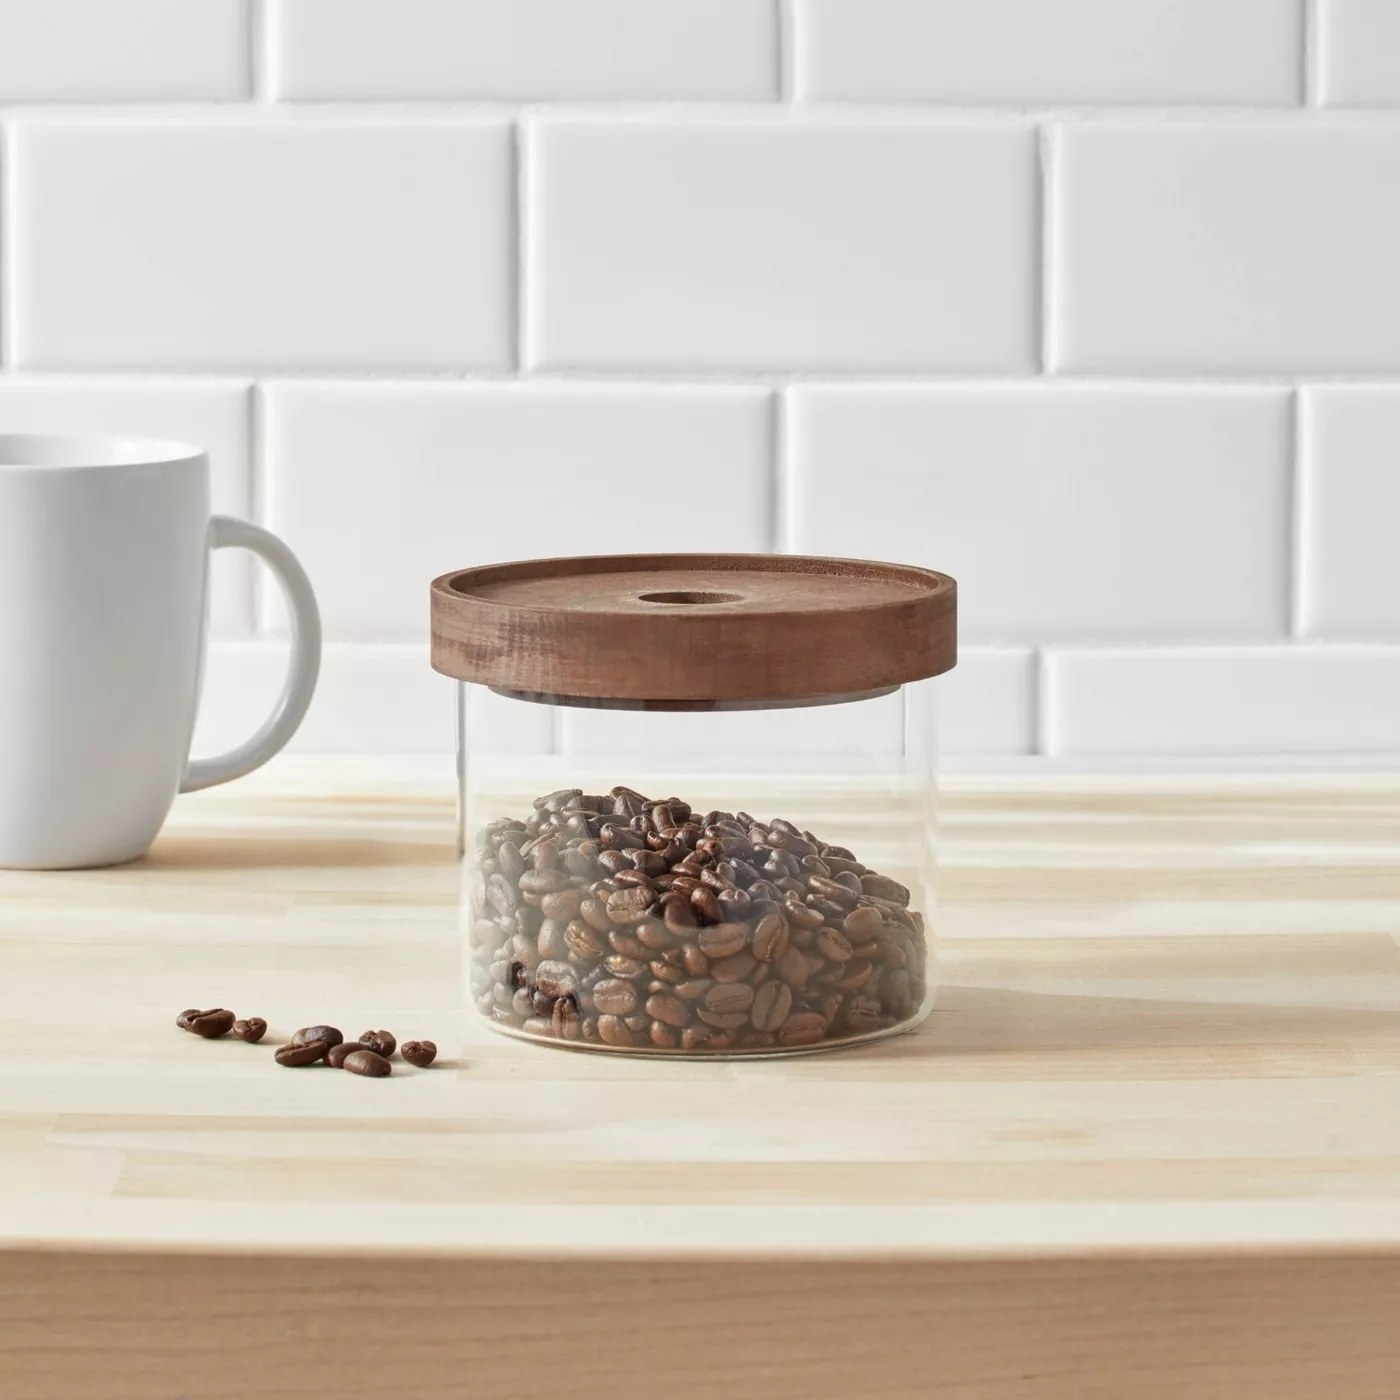 The glass container with coffee beans inside